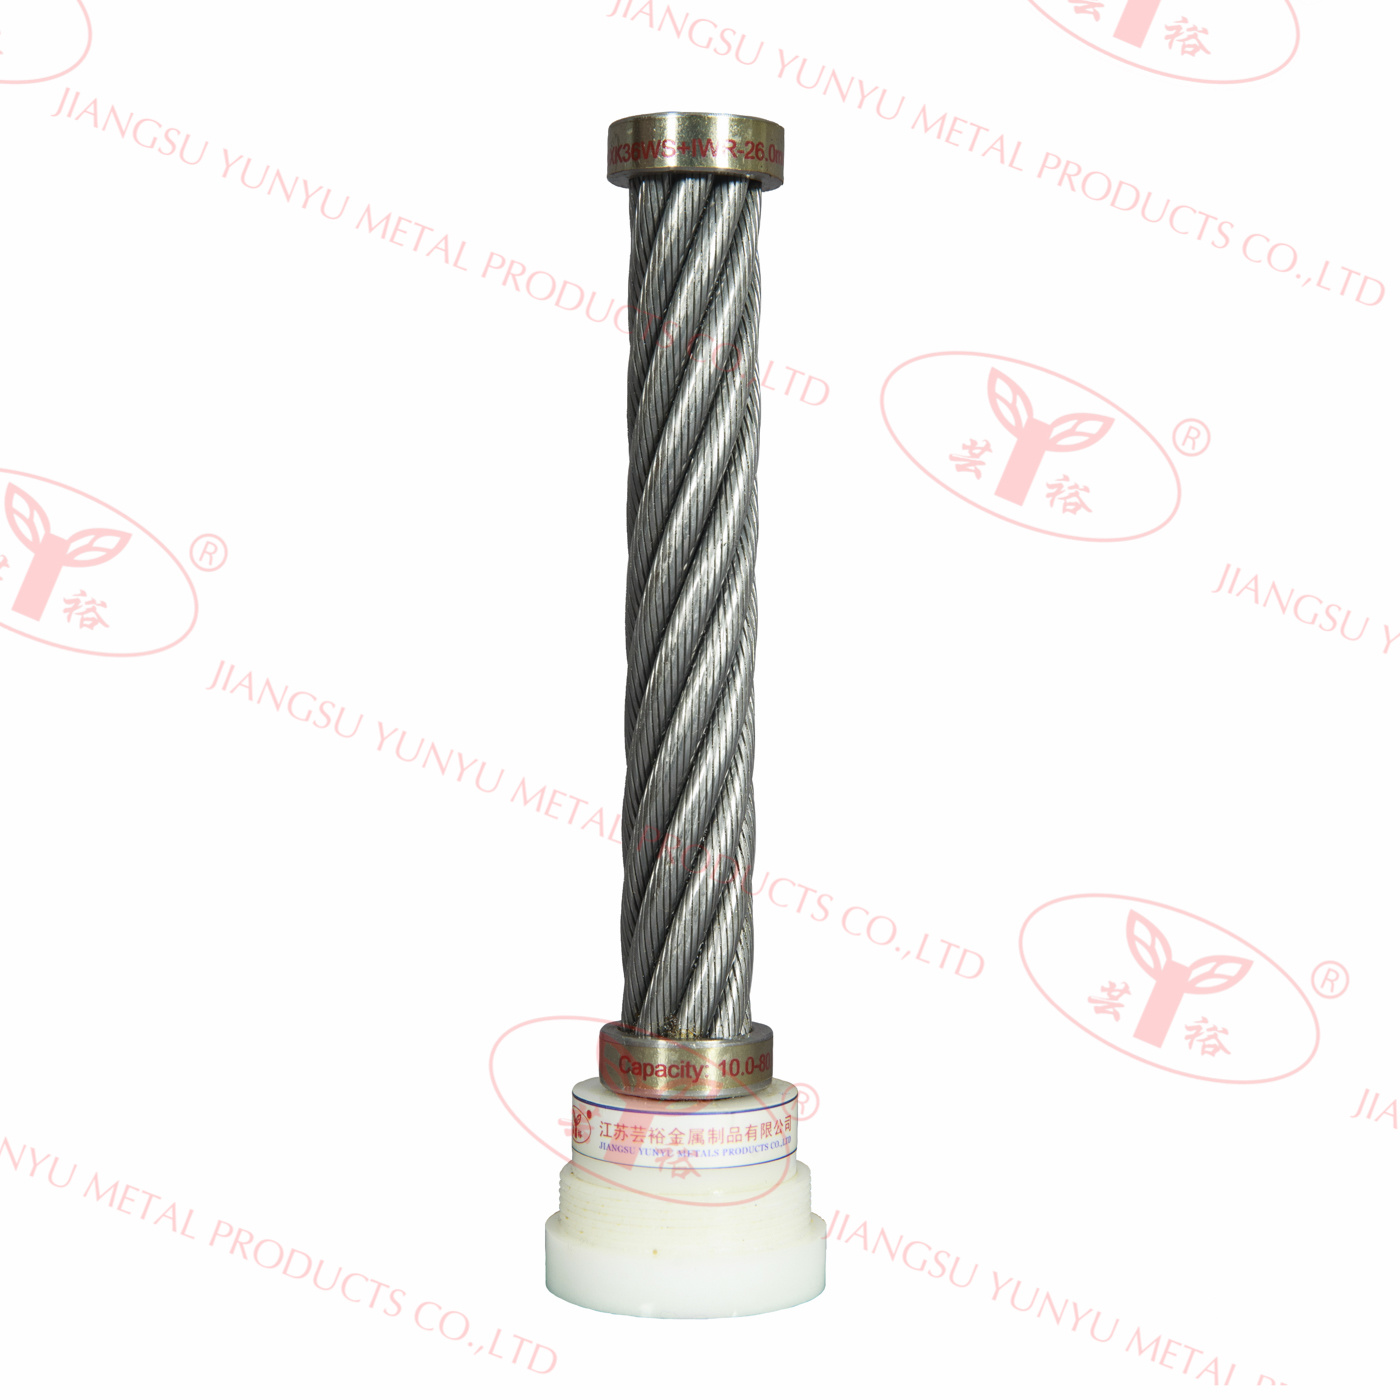 Compact Strand Steel Cable - 8xk36ws